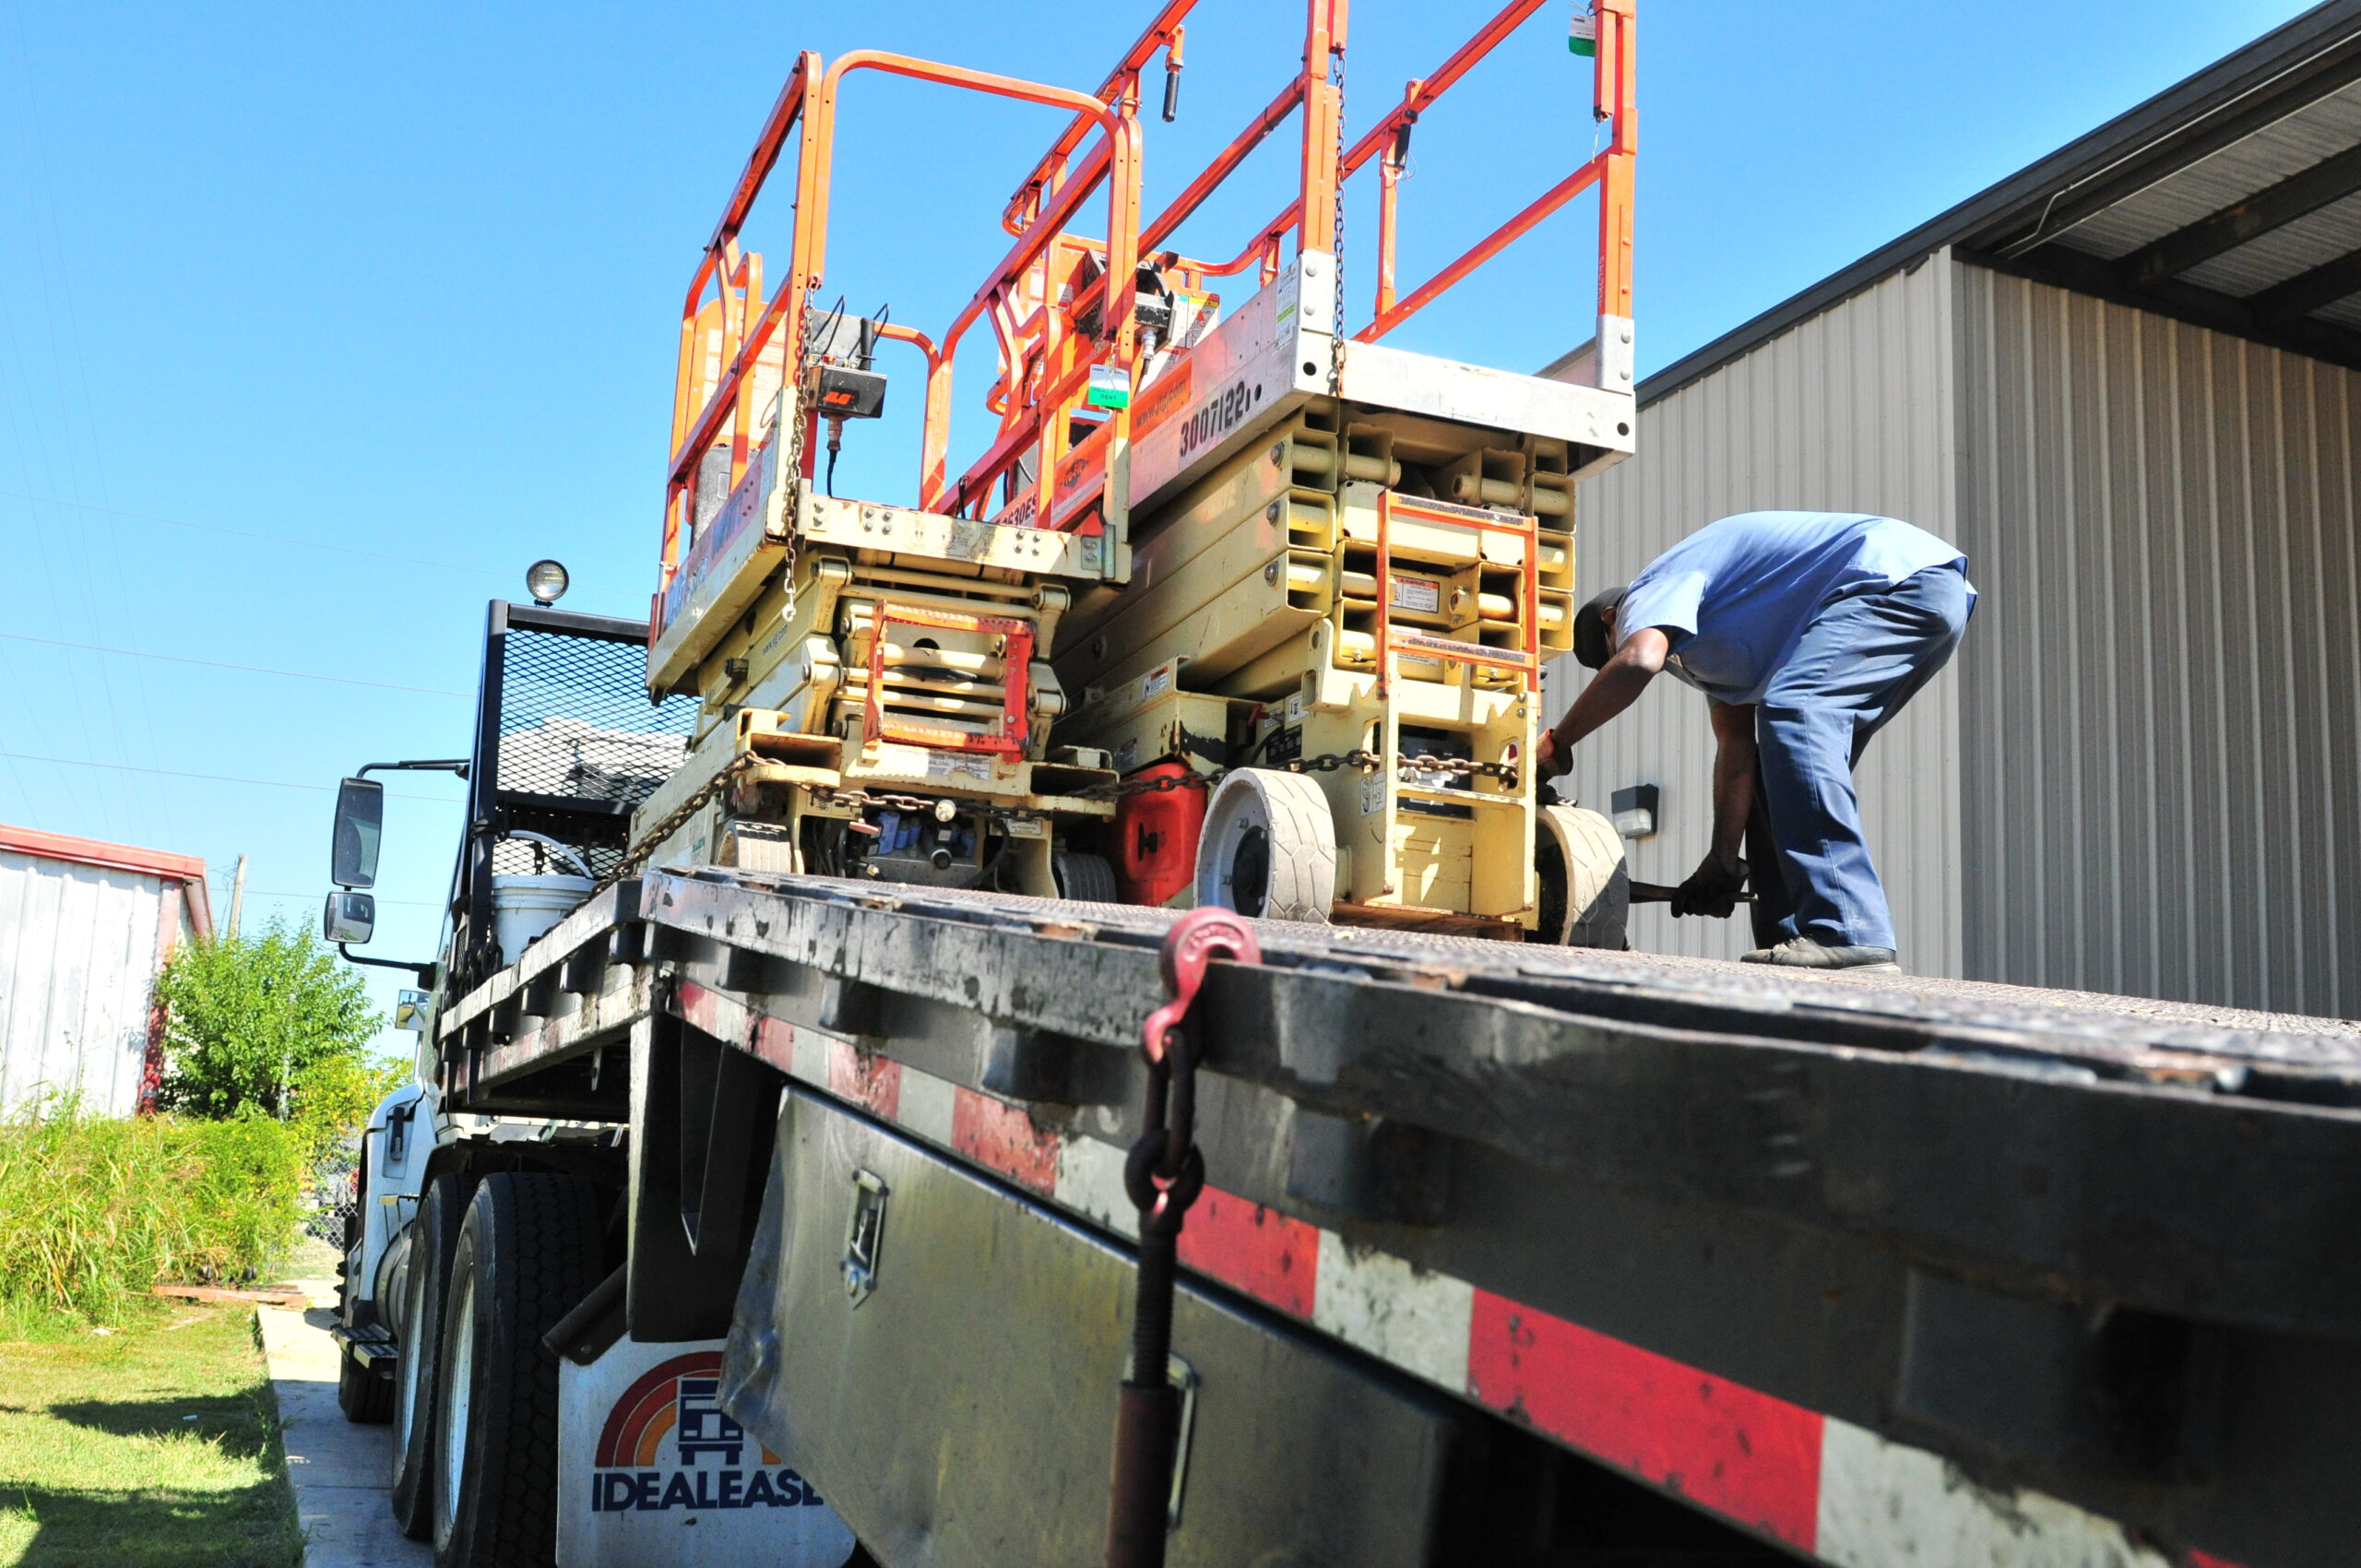 Rental equipment being loaded on truck